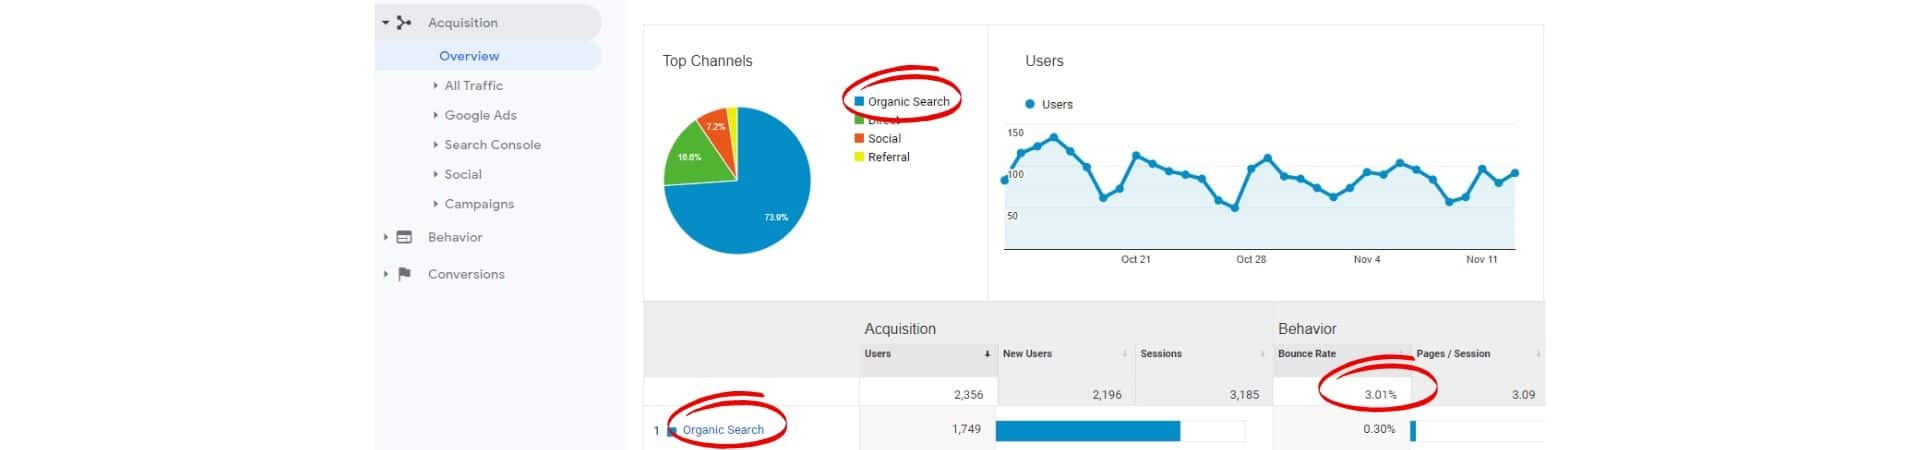 Website SEO Analytics Data